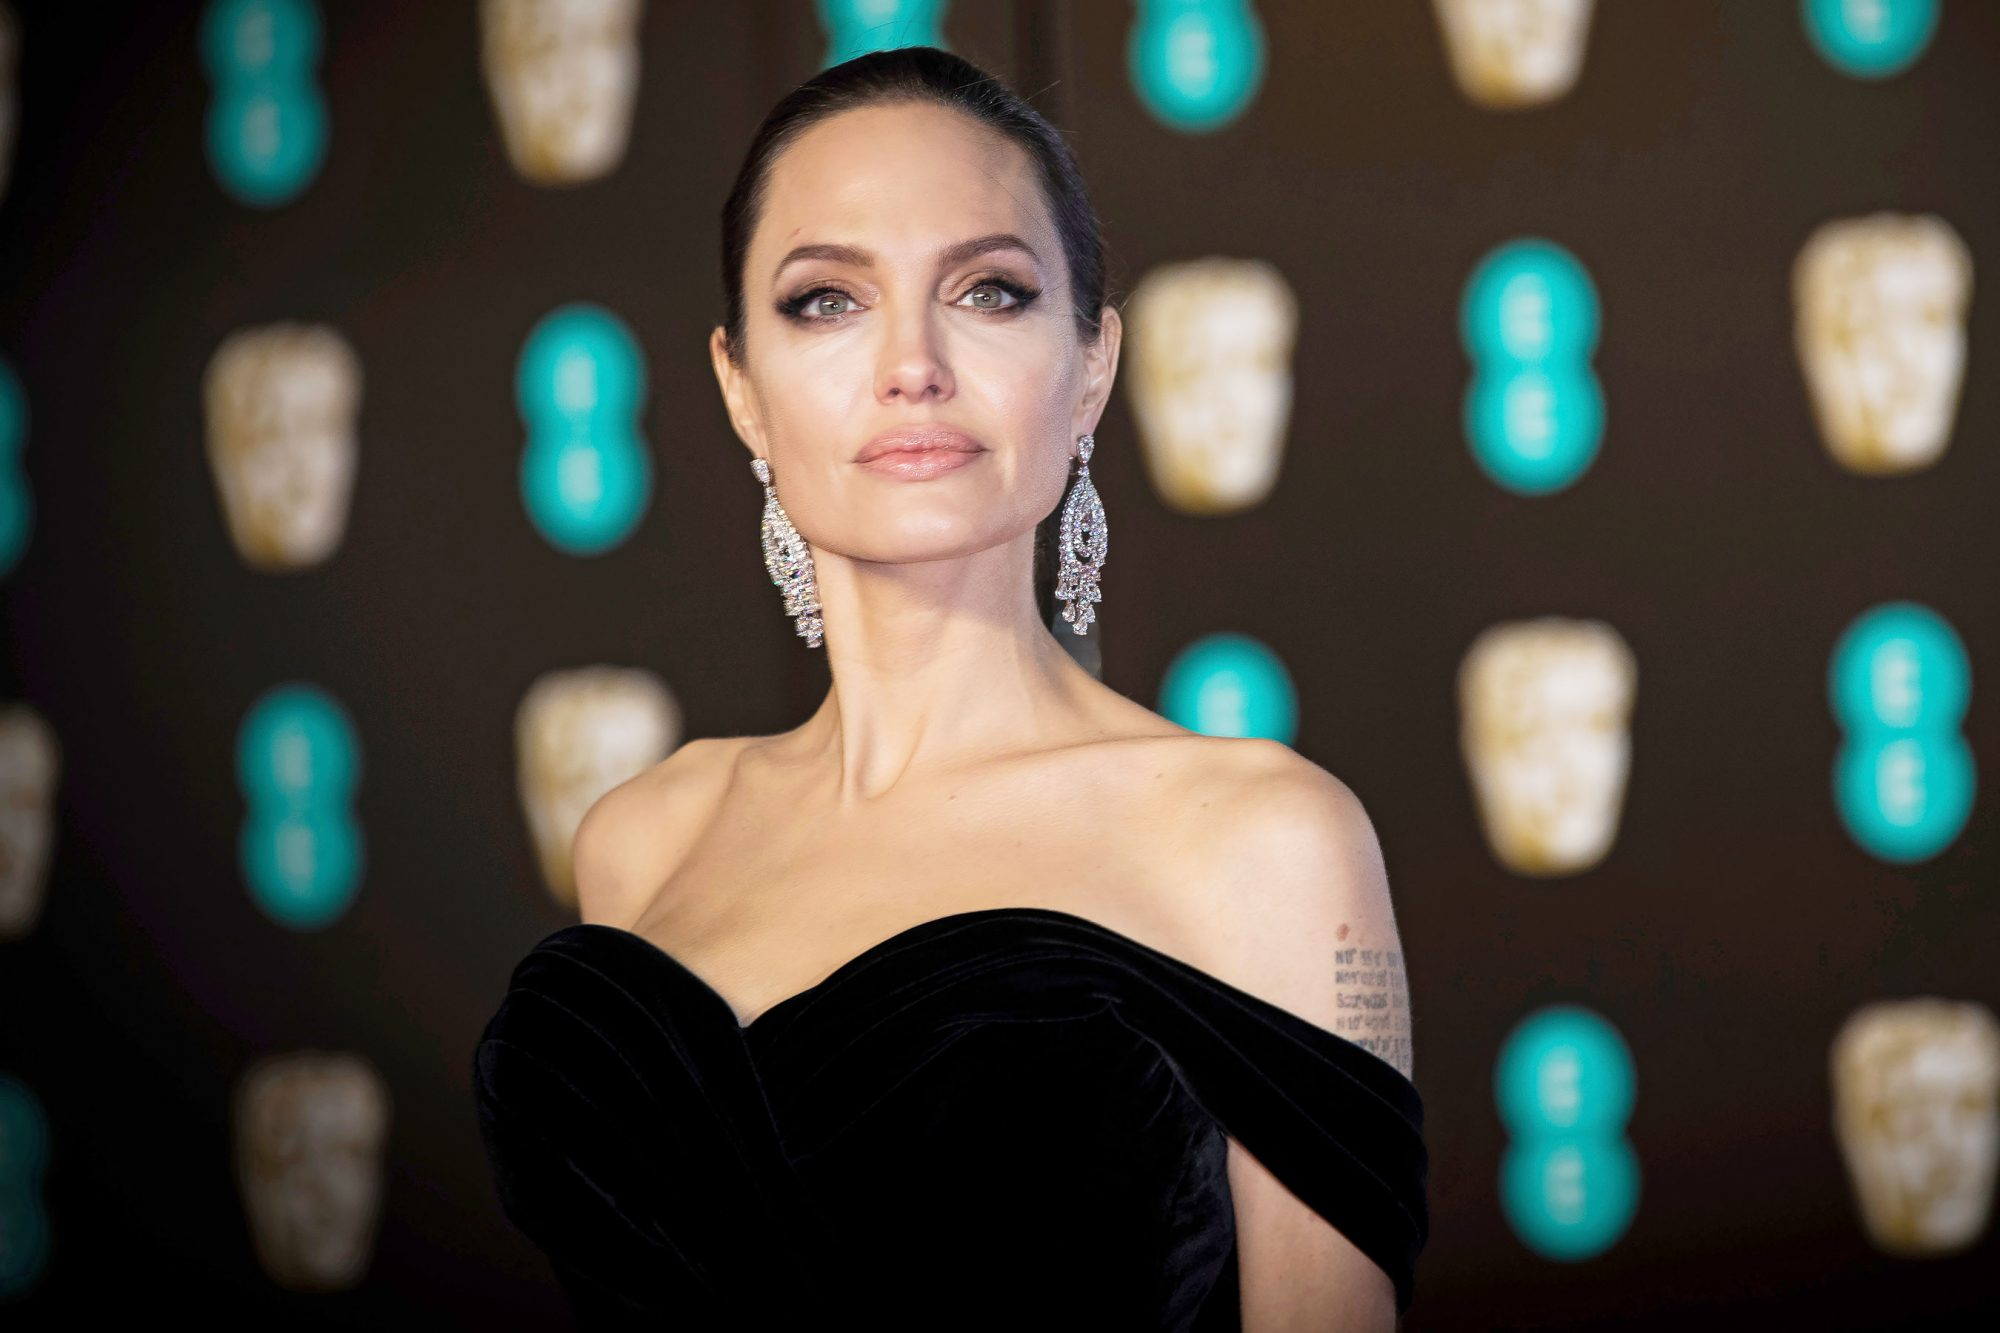 Britain BAFTA Awards 2018 Arrivals - 18 Feb 2018